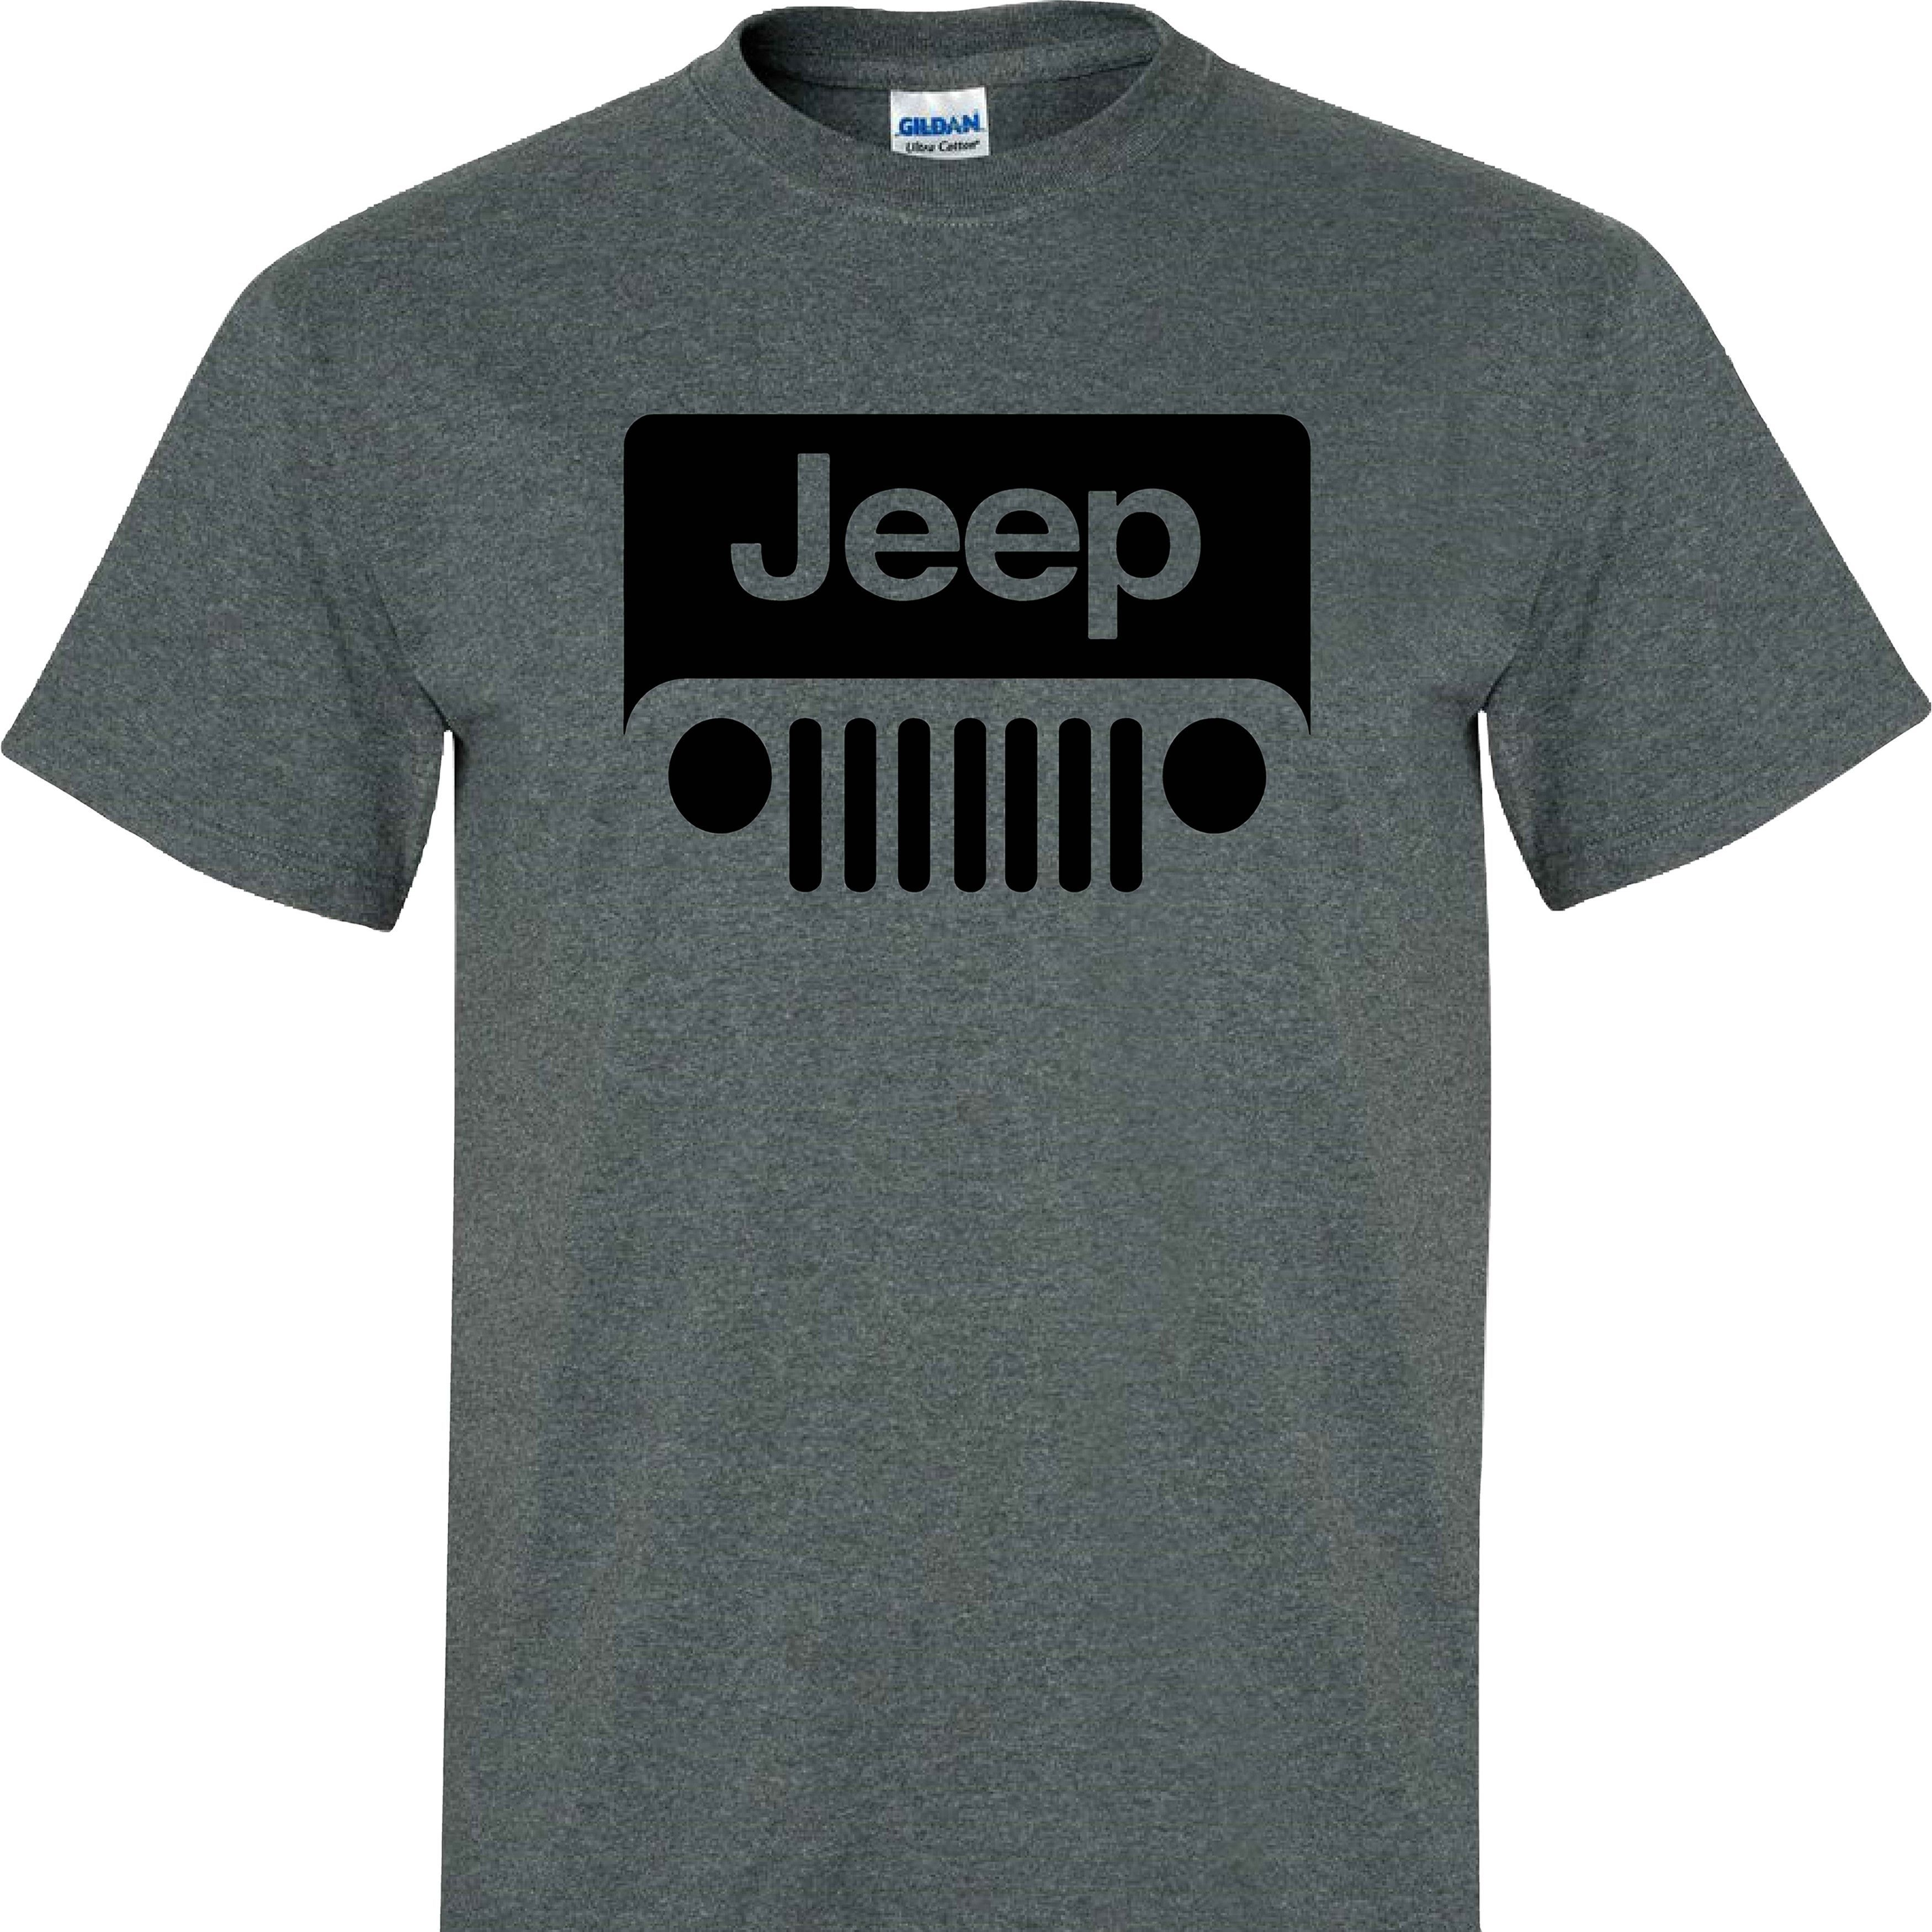 American Flag Off Road On A Dark Heather T Shirt Jeep Shirts